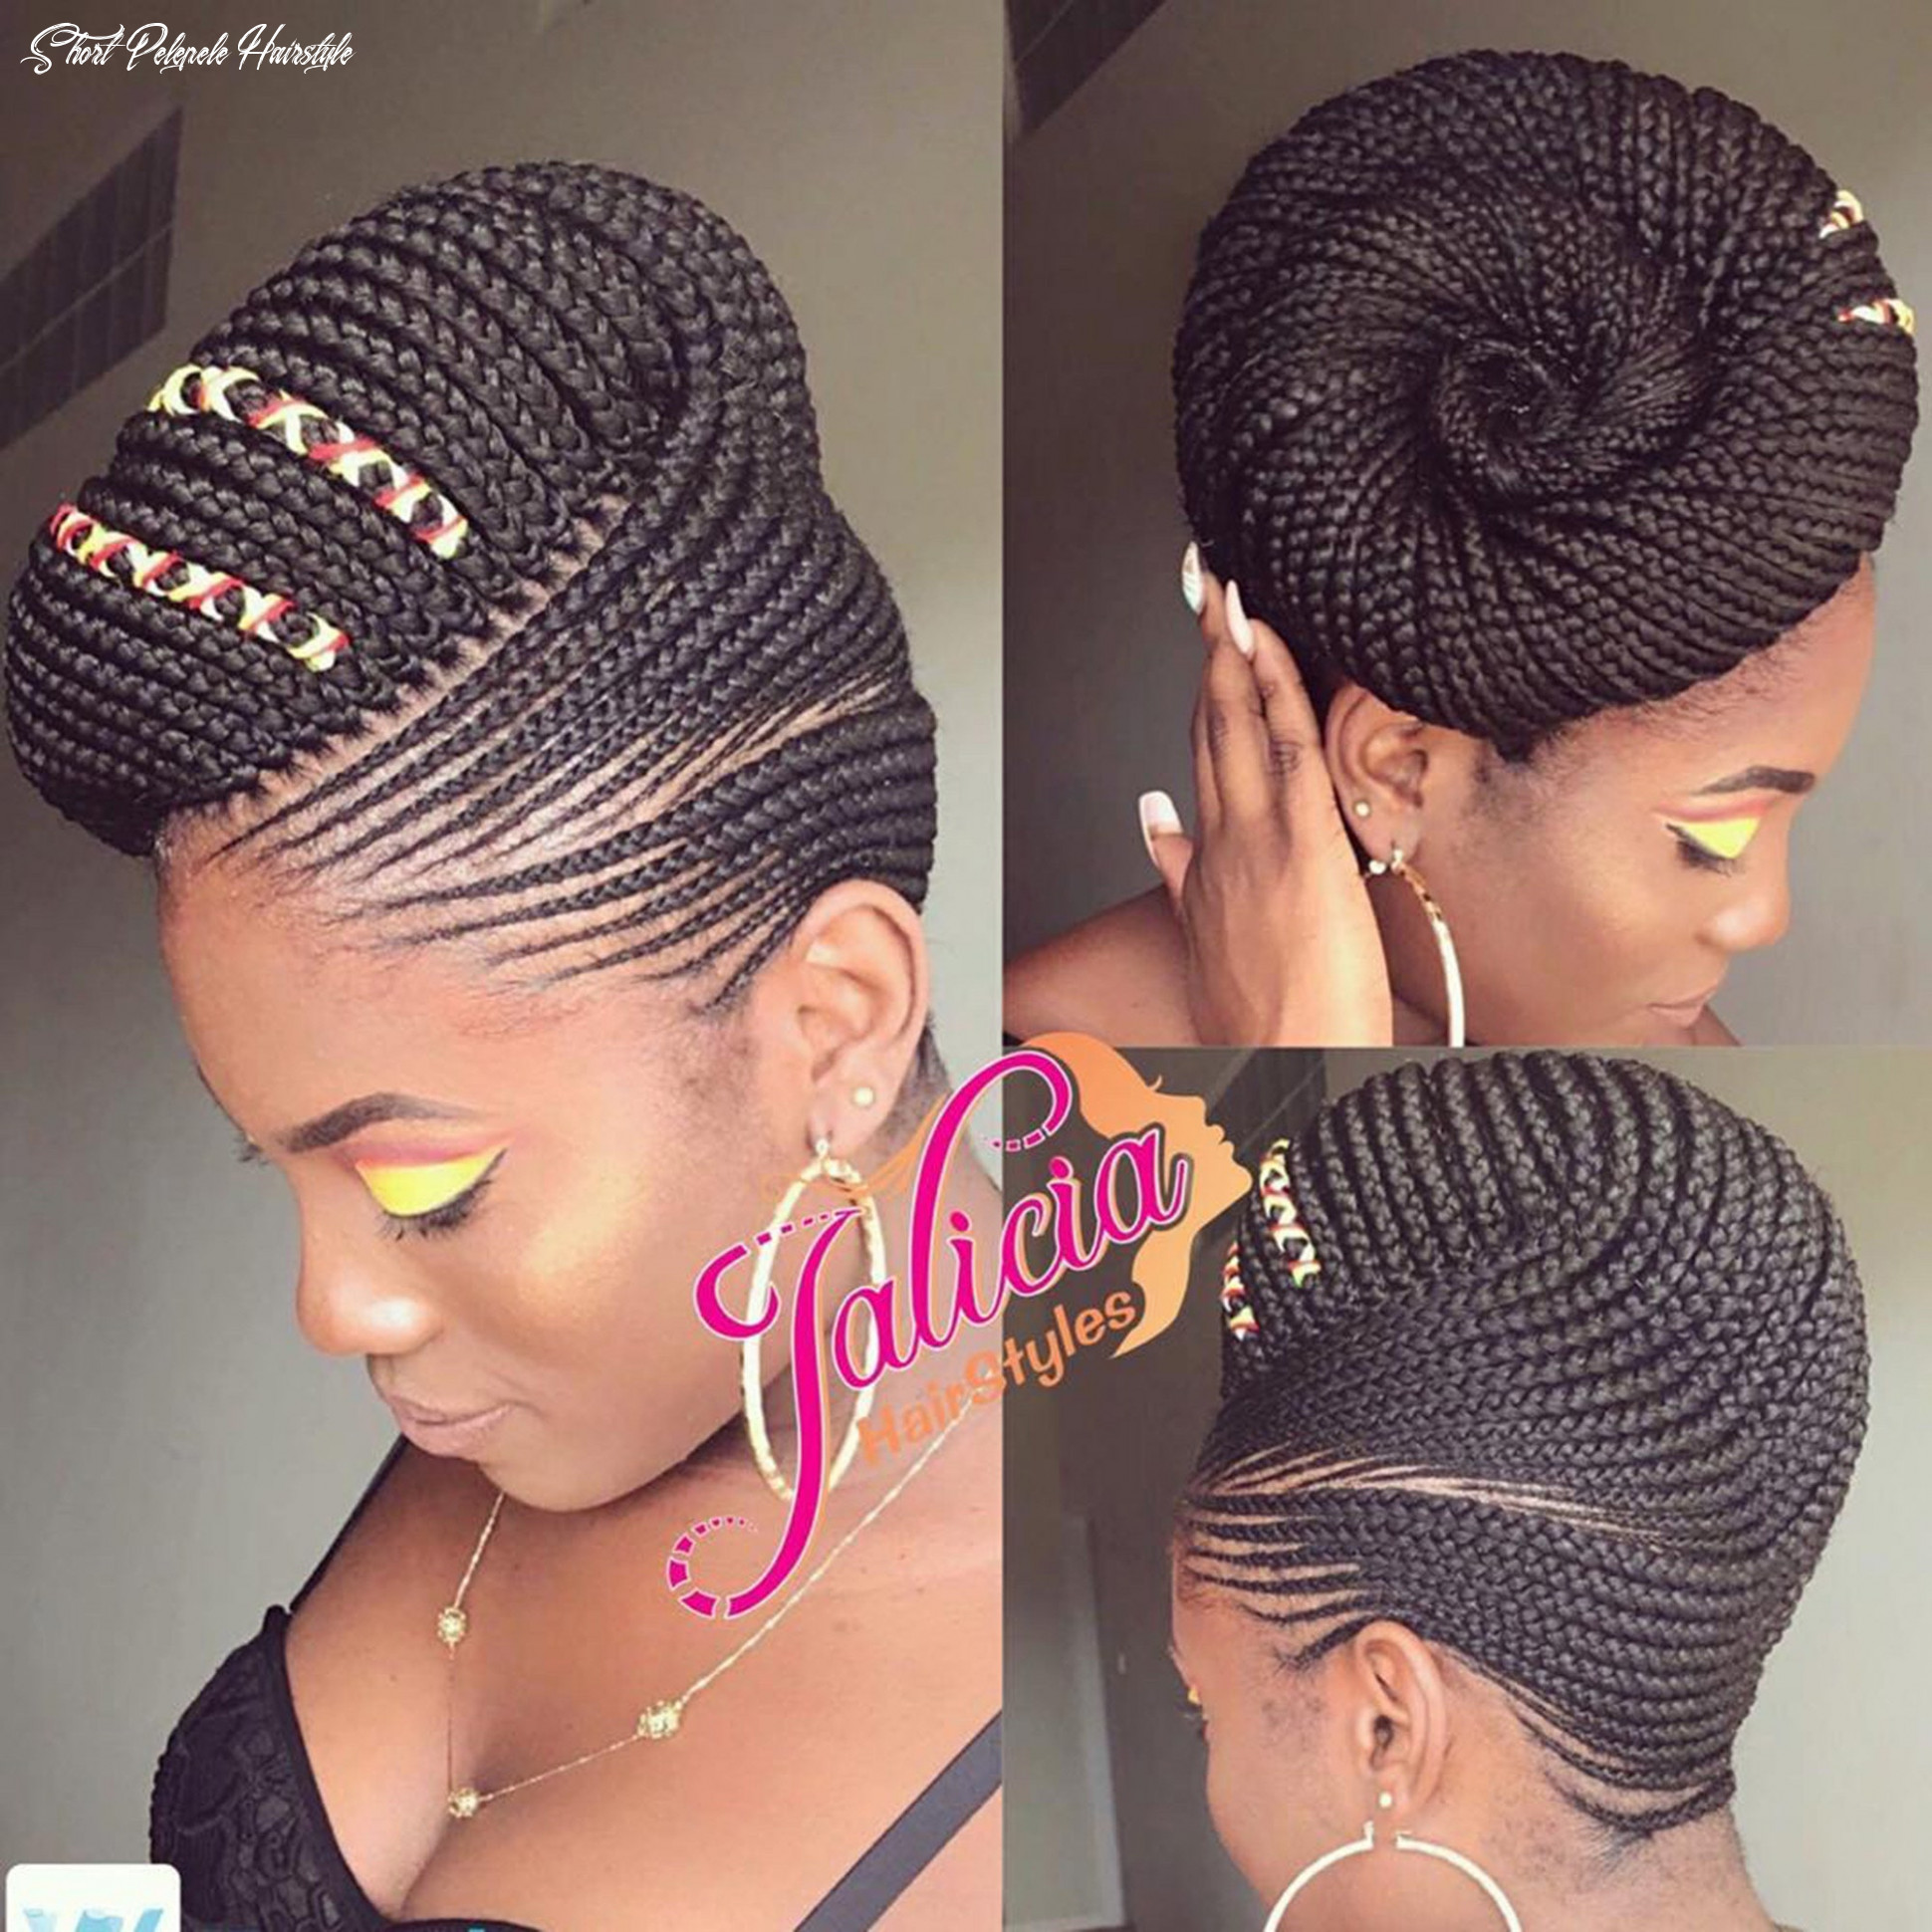 10 best black braided hairstyles to try in 10   allure short pelepele hairstyle